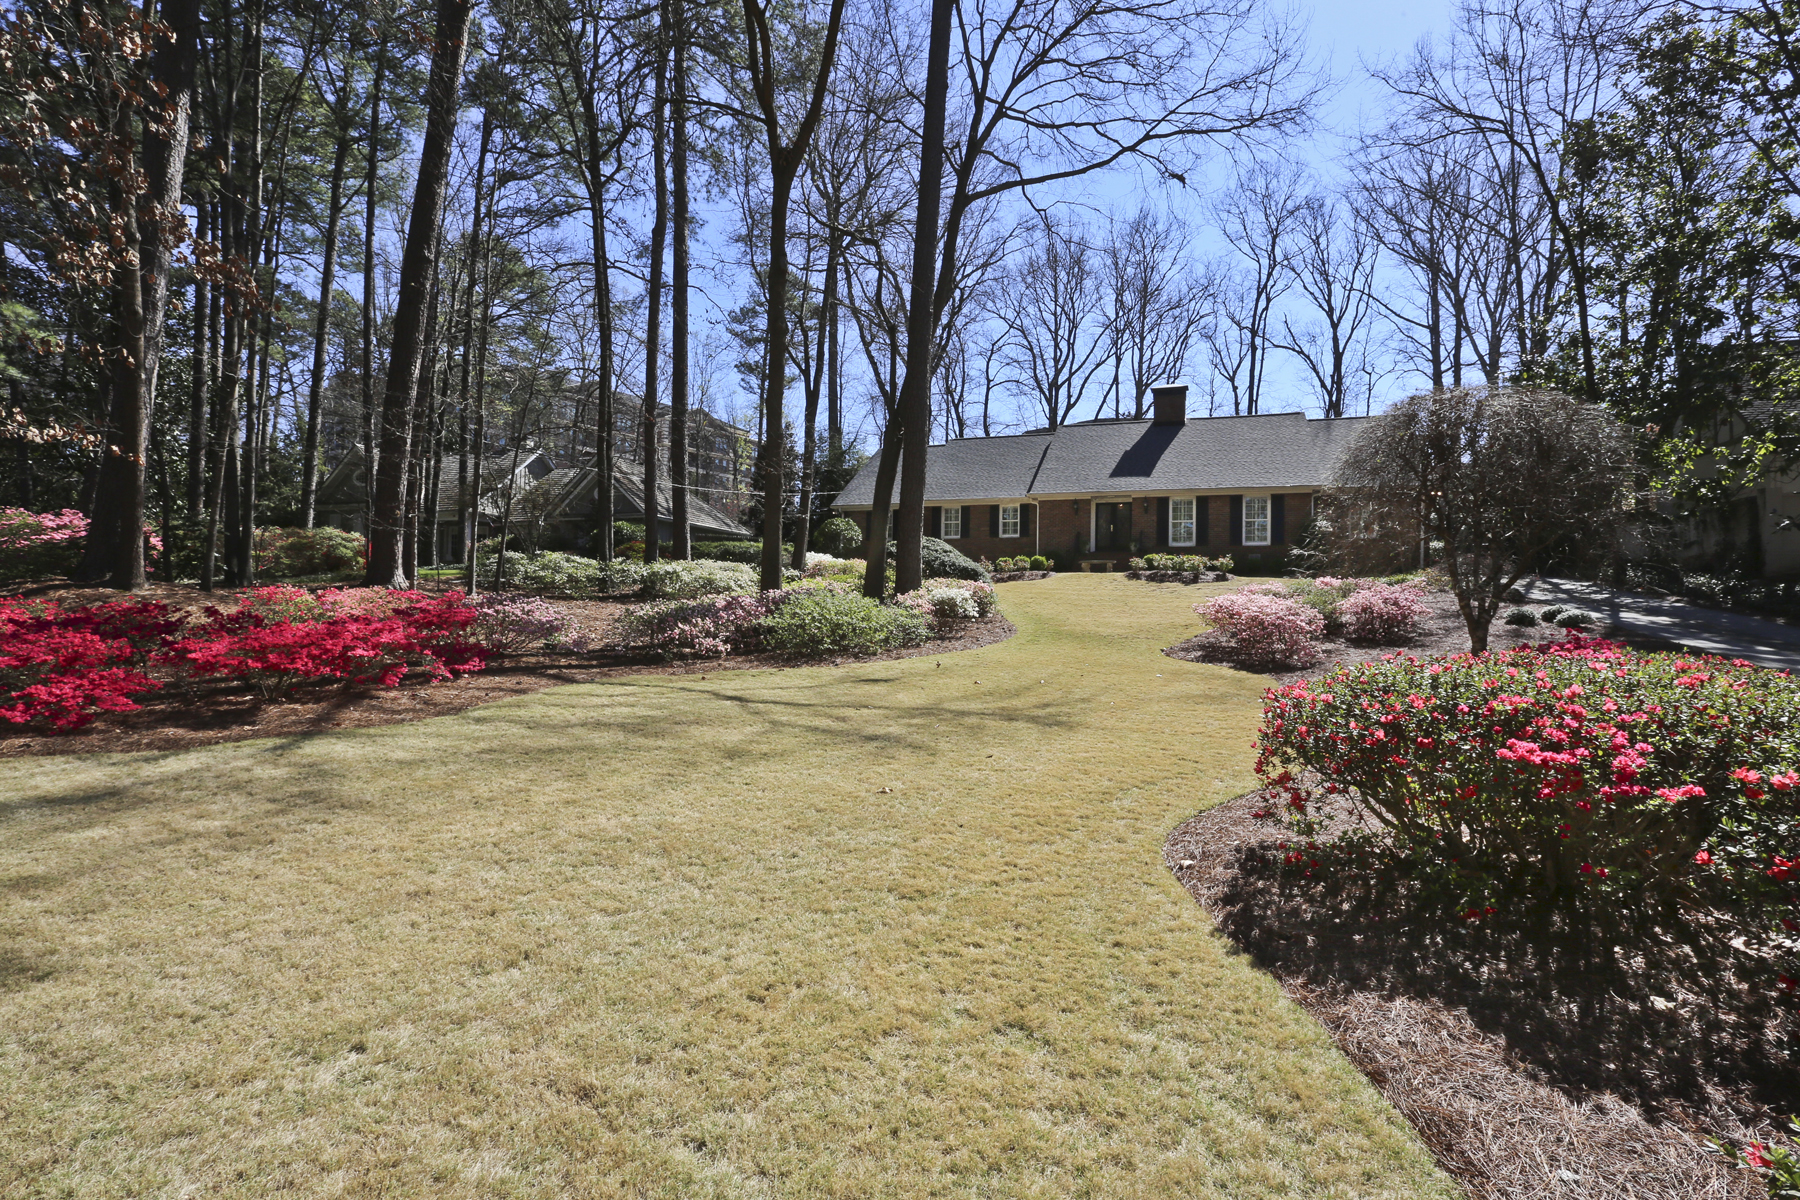 Single Family Home for Sale at Exceptionally Well Maintained Home; Master On Main; Fabulous Outdoor Area 3325 Valley Road NW Buckhead, Atlanta, Georgia, 30305 United States